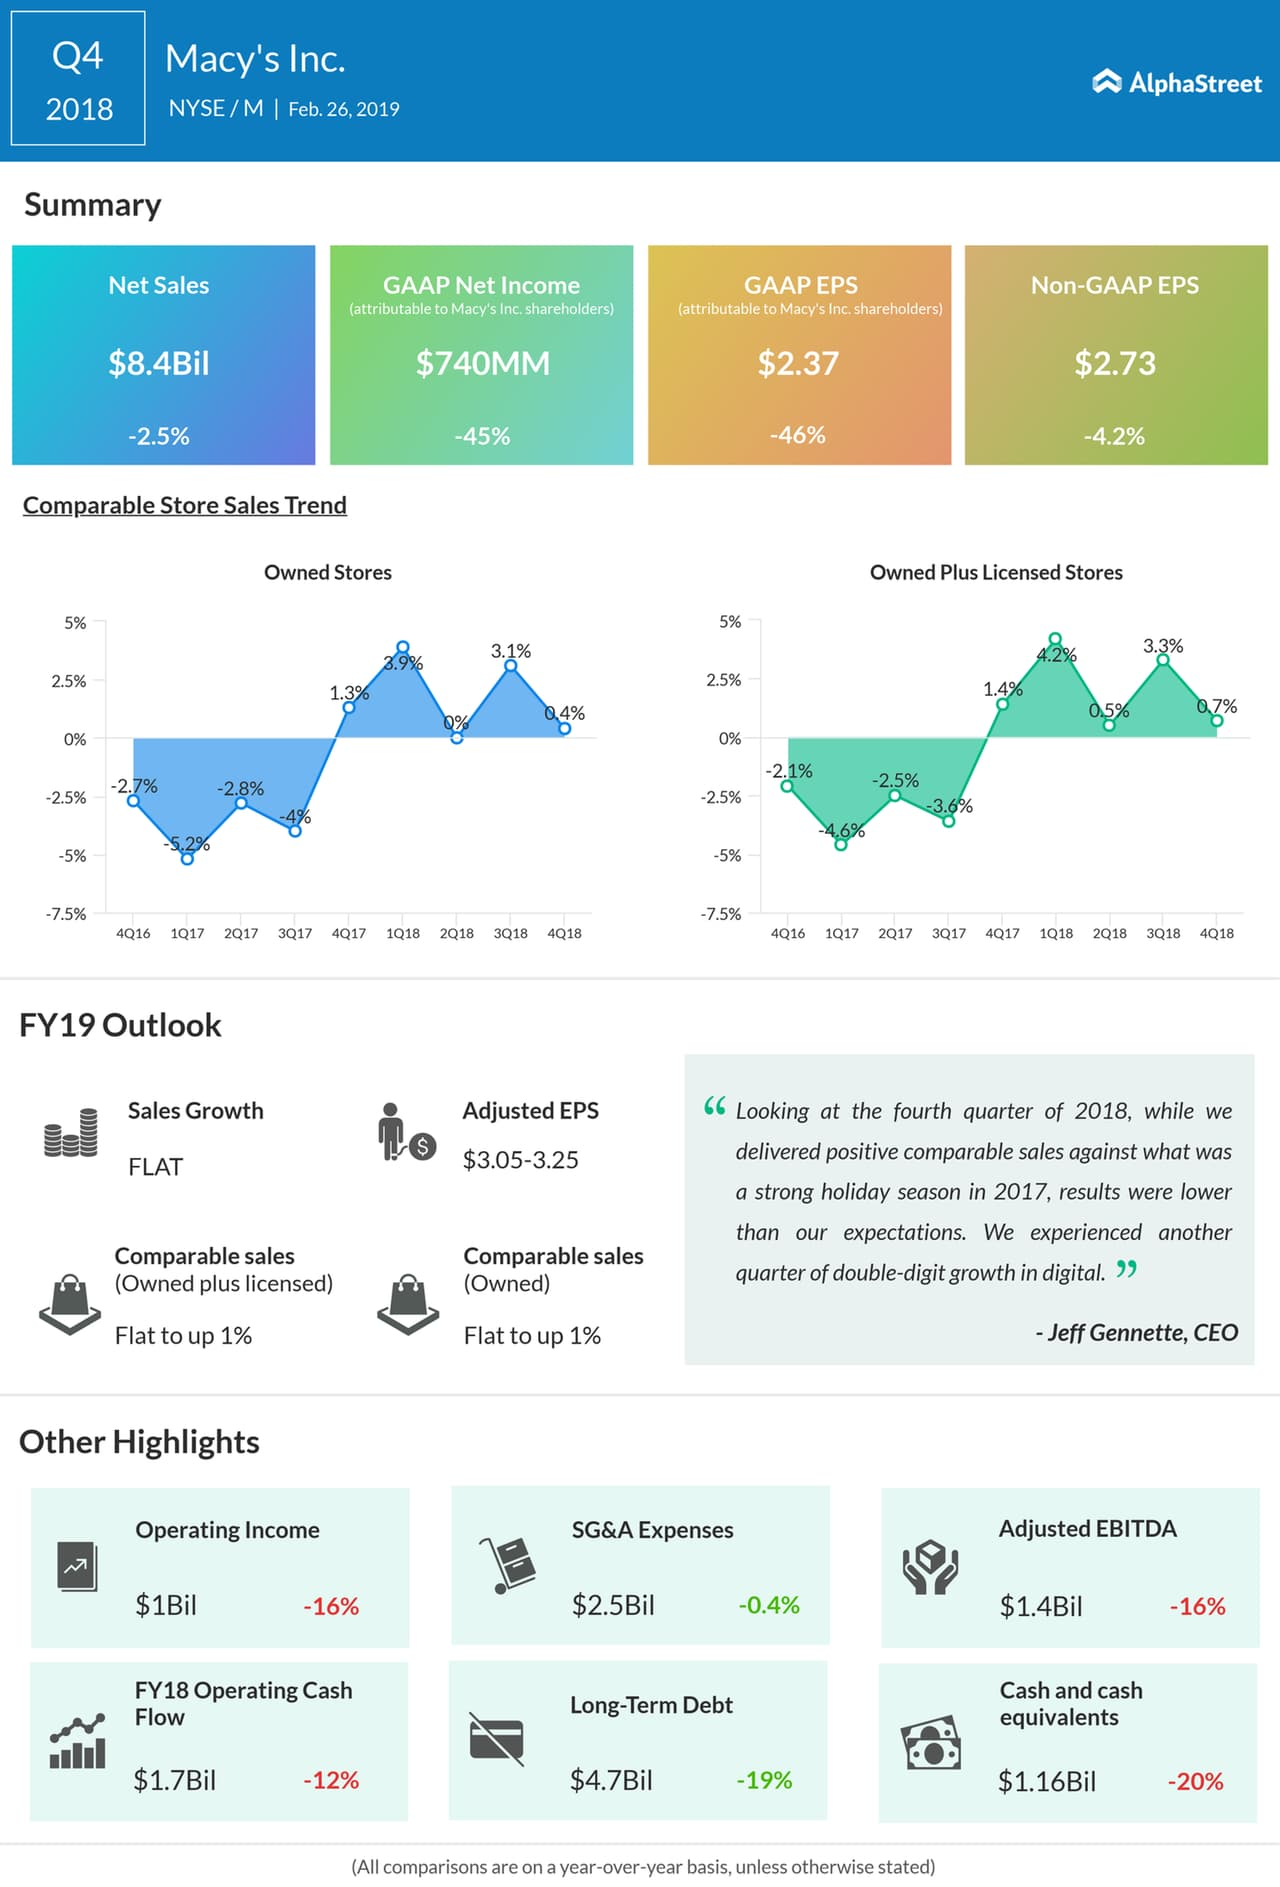 An infographic on Macy's fourth quarter 2018 earnings results